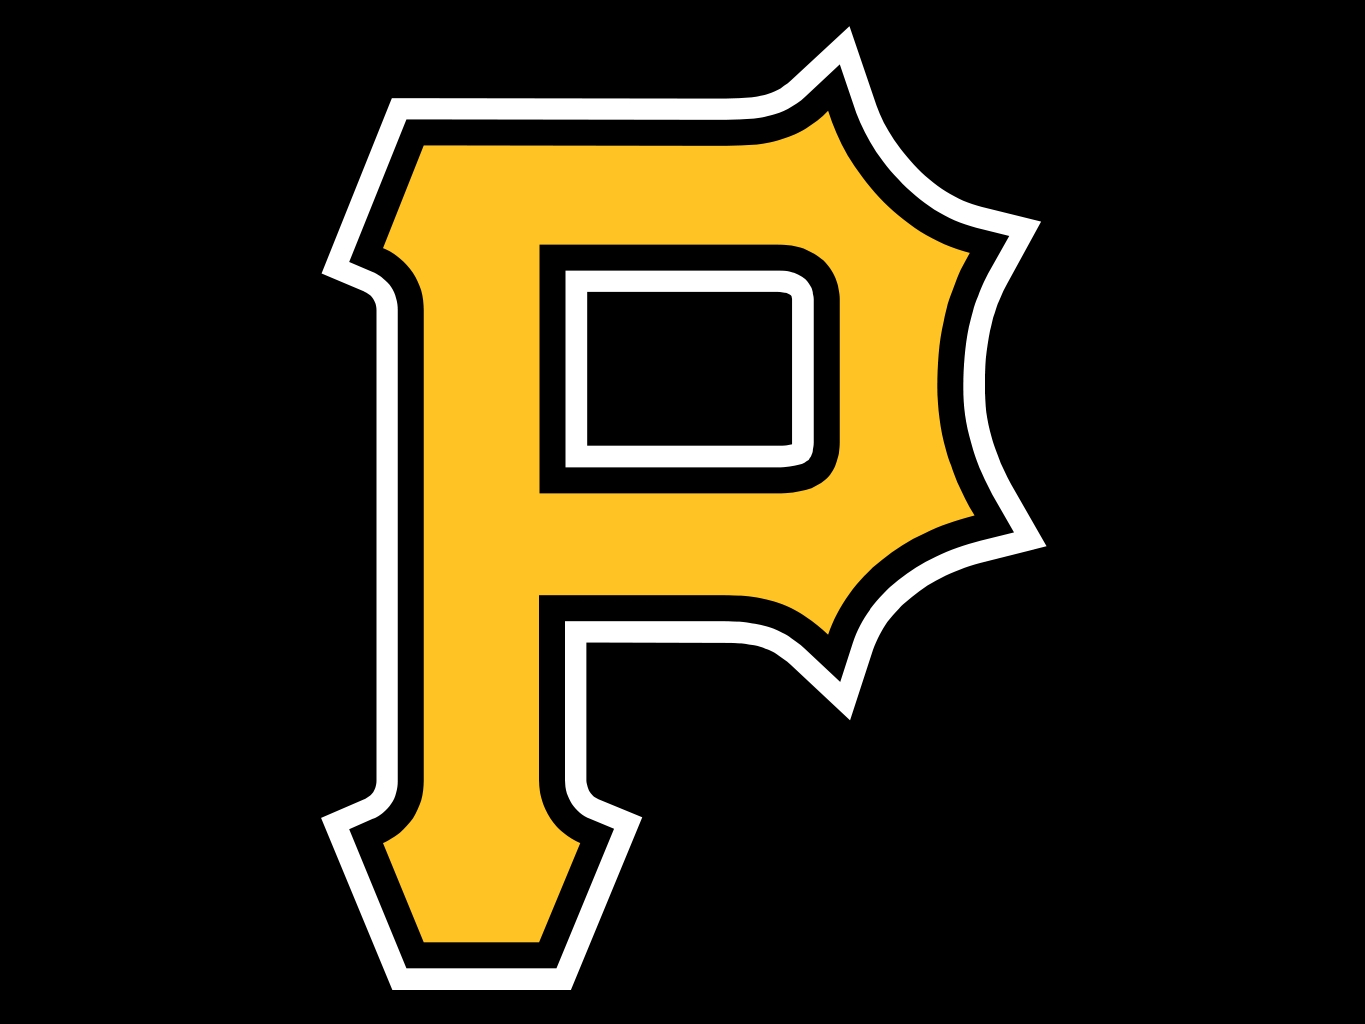 Pittsburgh pirates Logos.